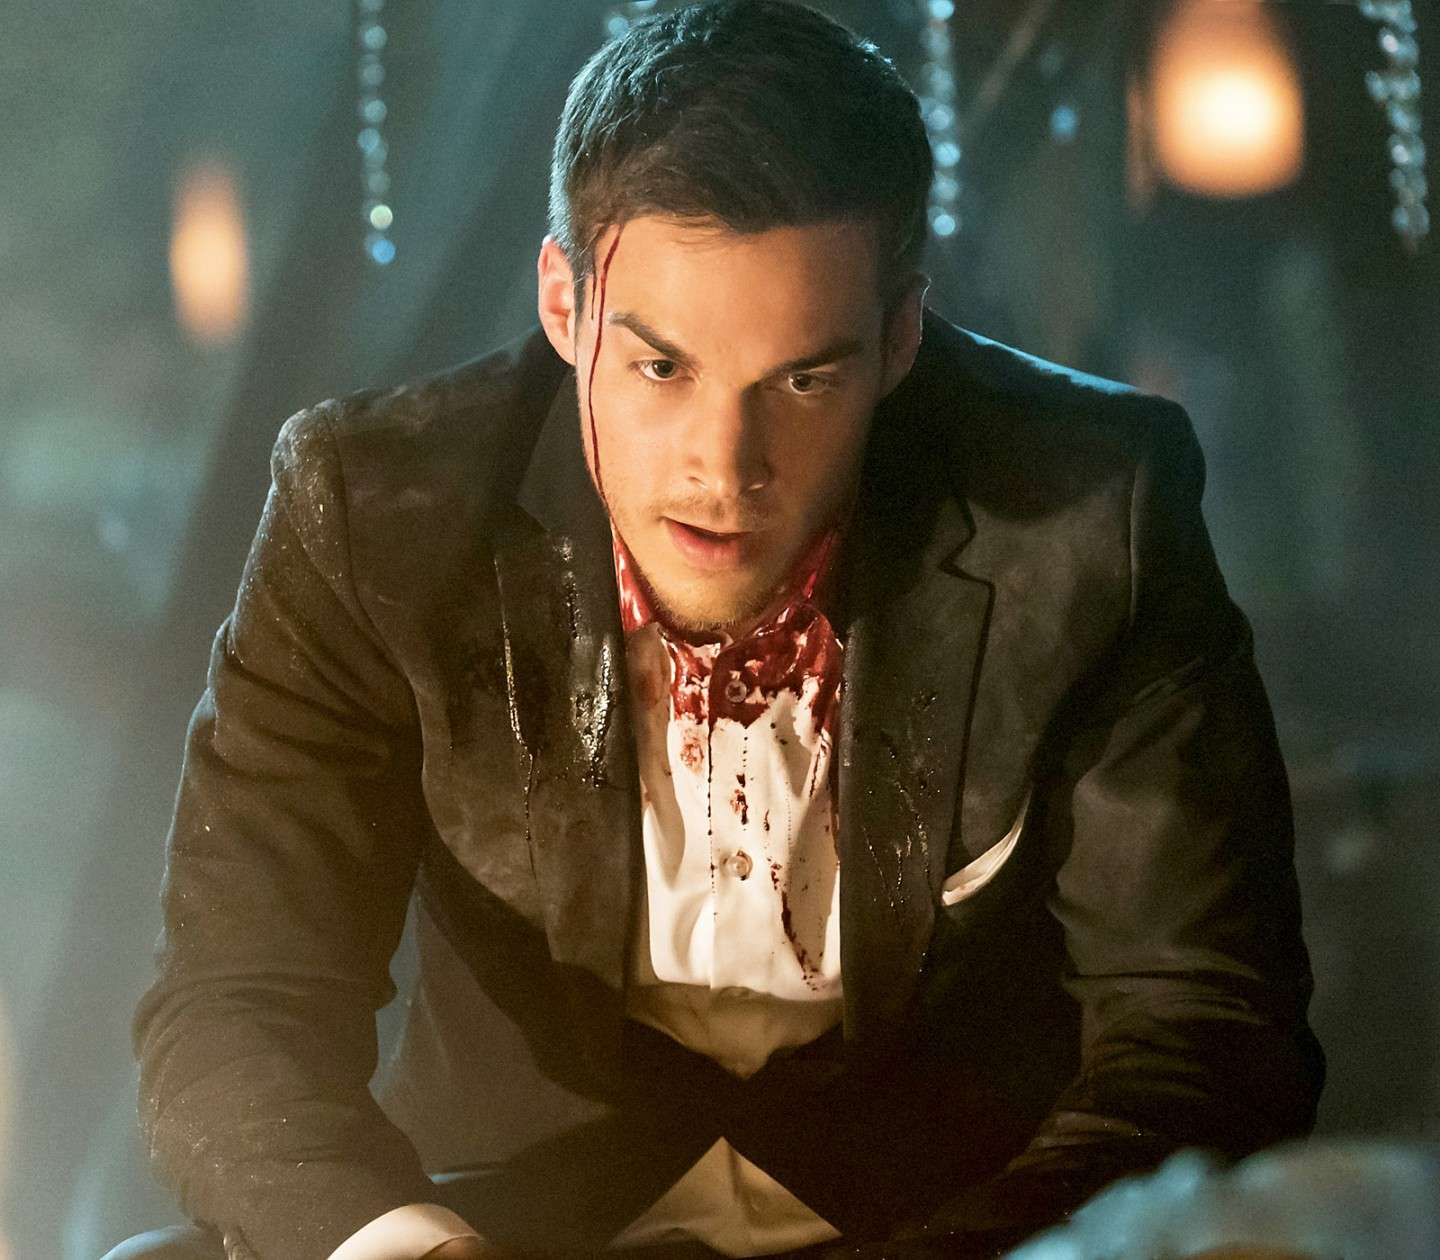 Chris Wood in The Vampire Diaries